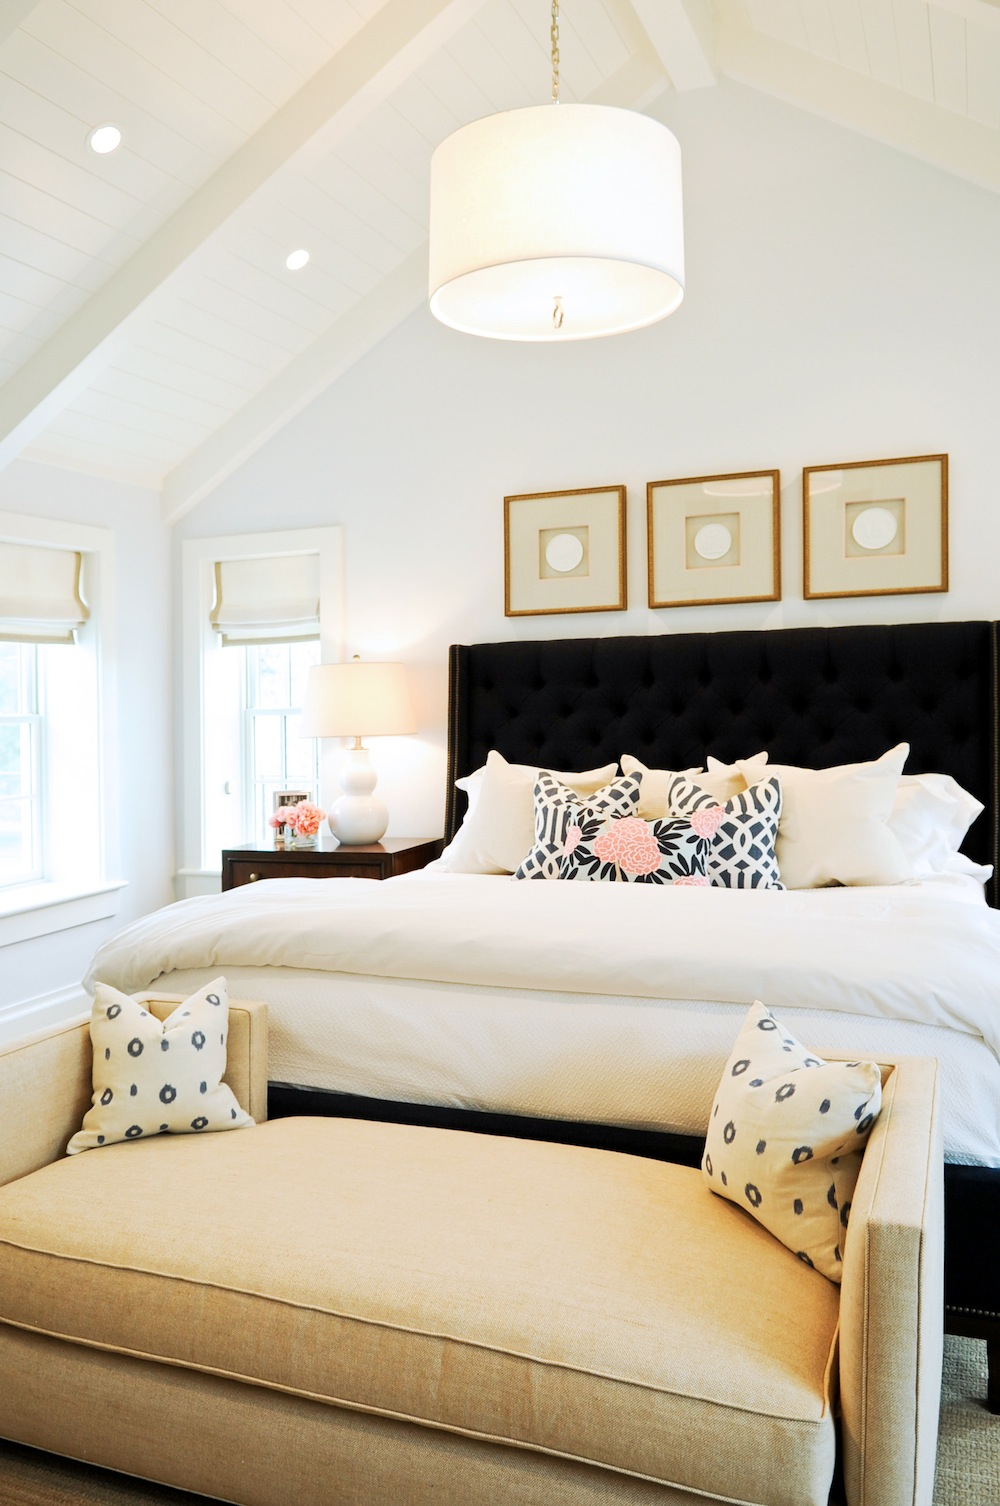 charming upholstered headboards in black with white bedding before the white wall plus chandelier for bedroom decor ideas